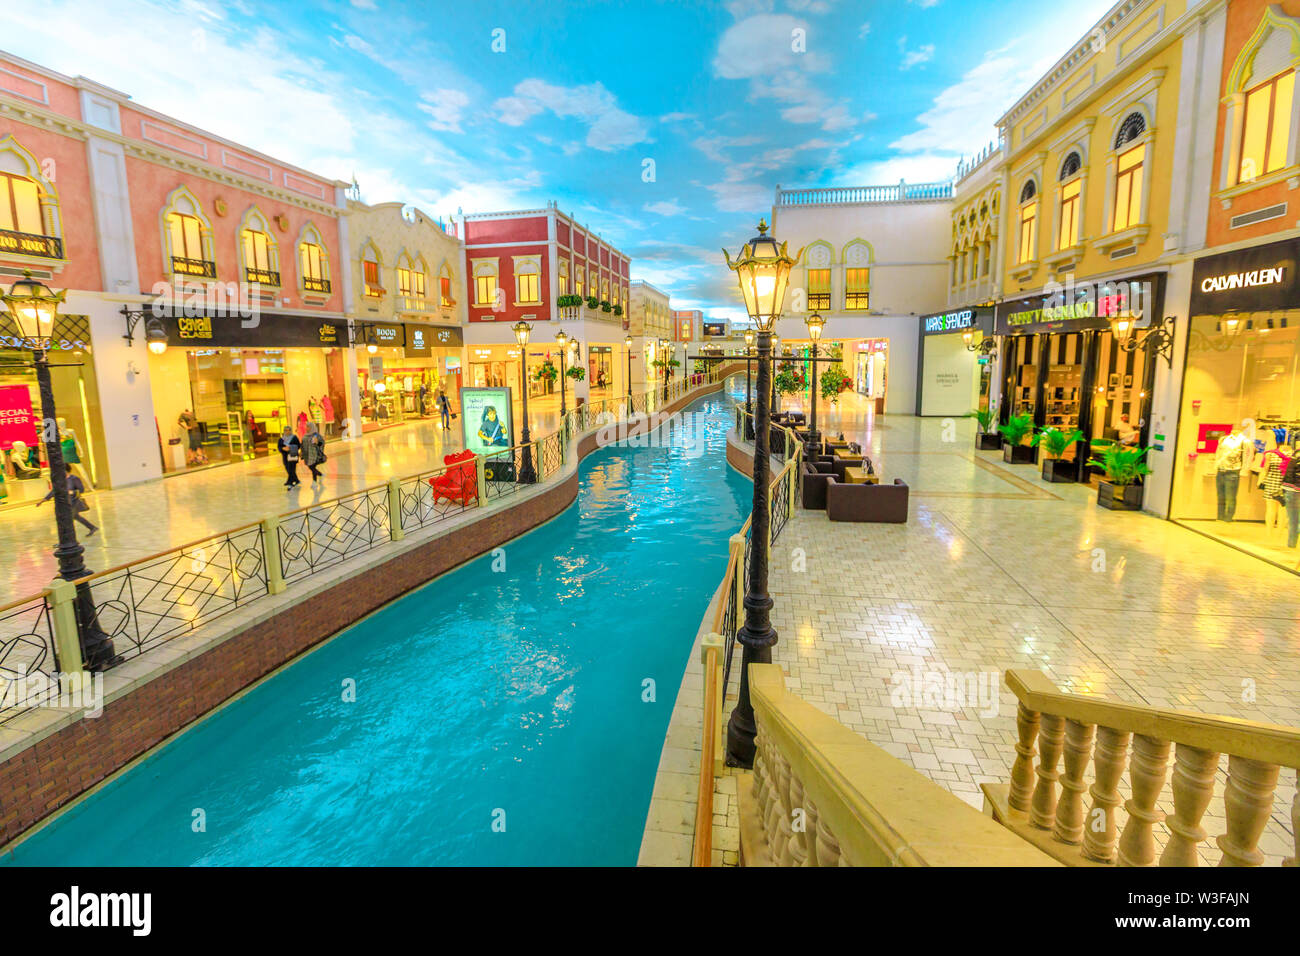 Doha, Qatar - February 21, 2019: venice canal in Villaggio Mall, a shopping center in Aspire Zone. Luxury brands, expensive stores and exclusive shops - Stock Image